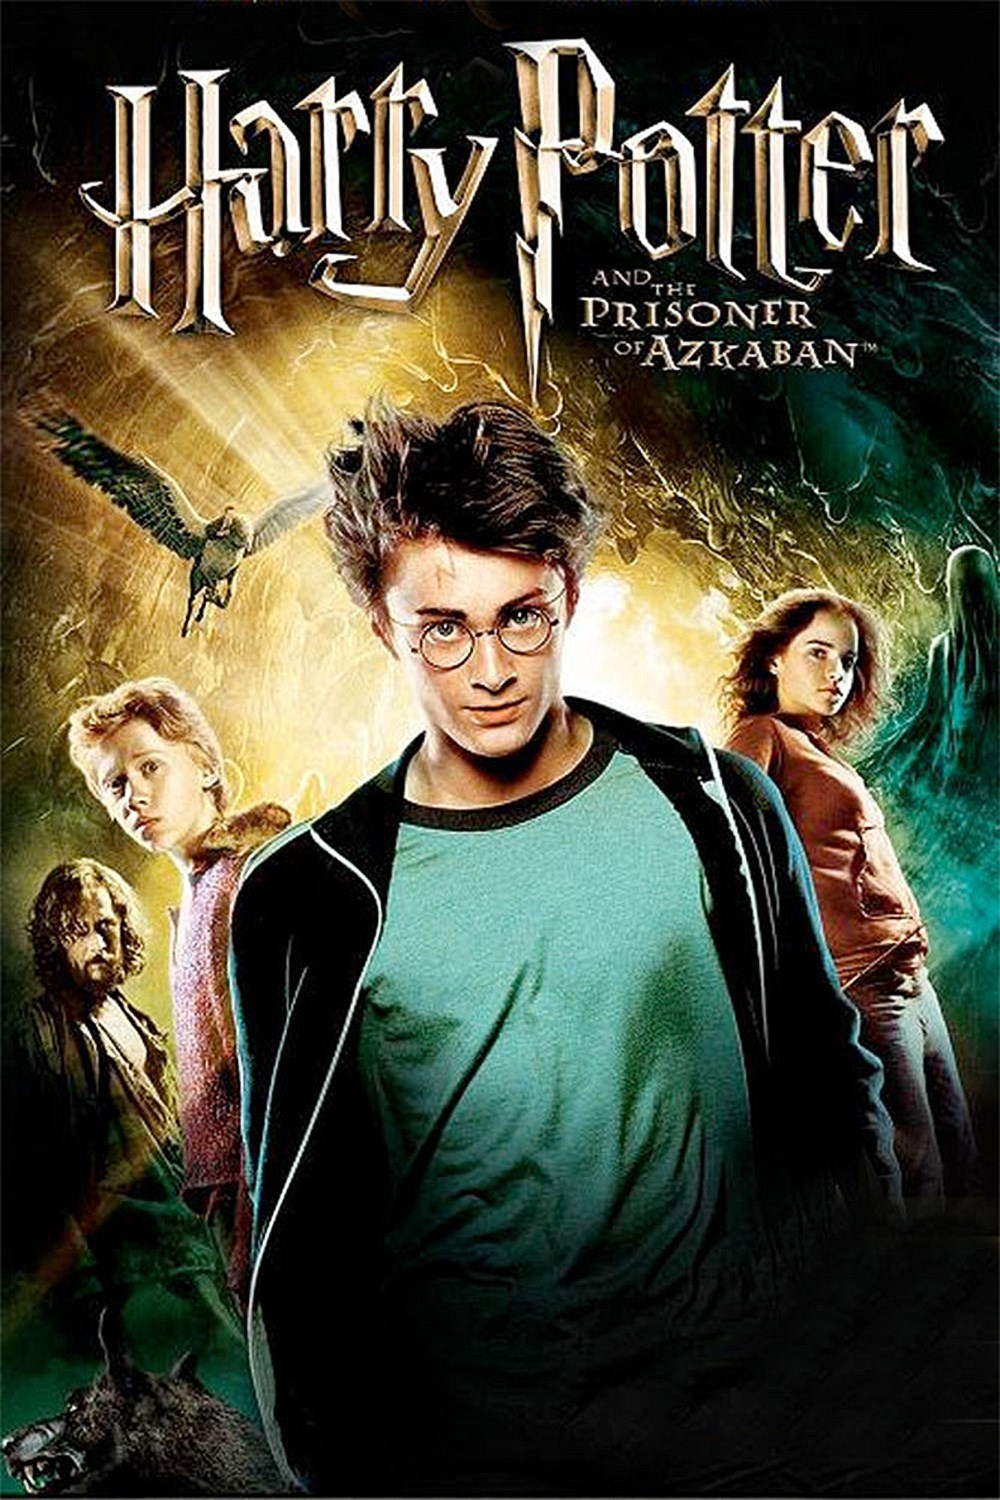 Harry Potter and the Prisoner of Azkaban 2004 - Full (HD)